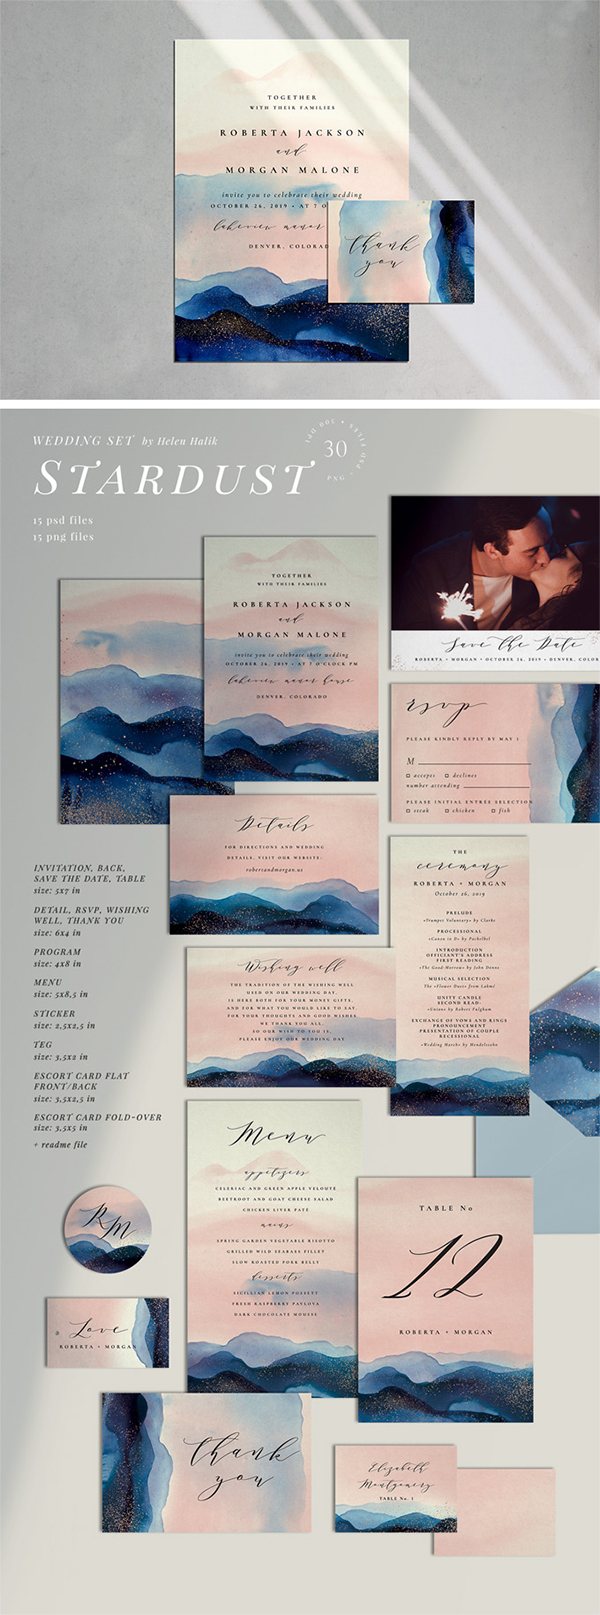 Stardust Invitation Templates Set